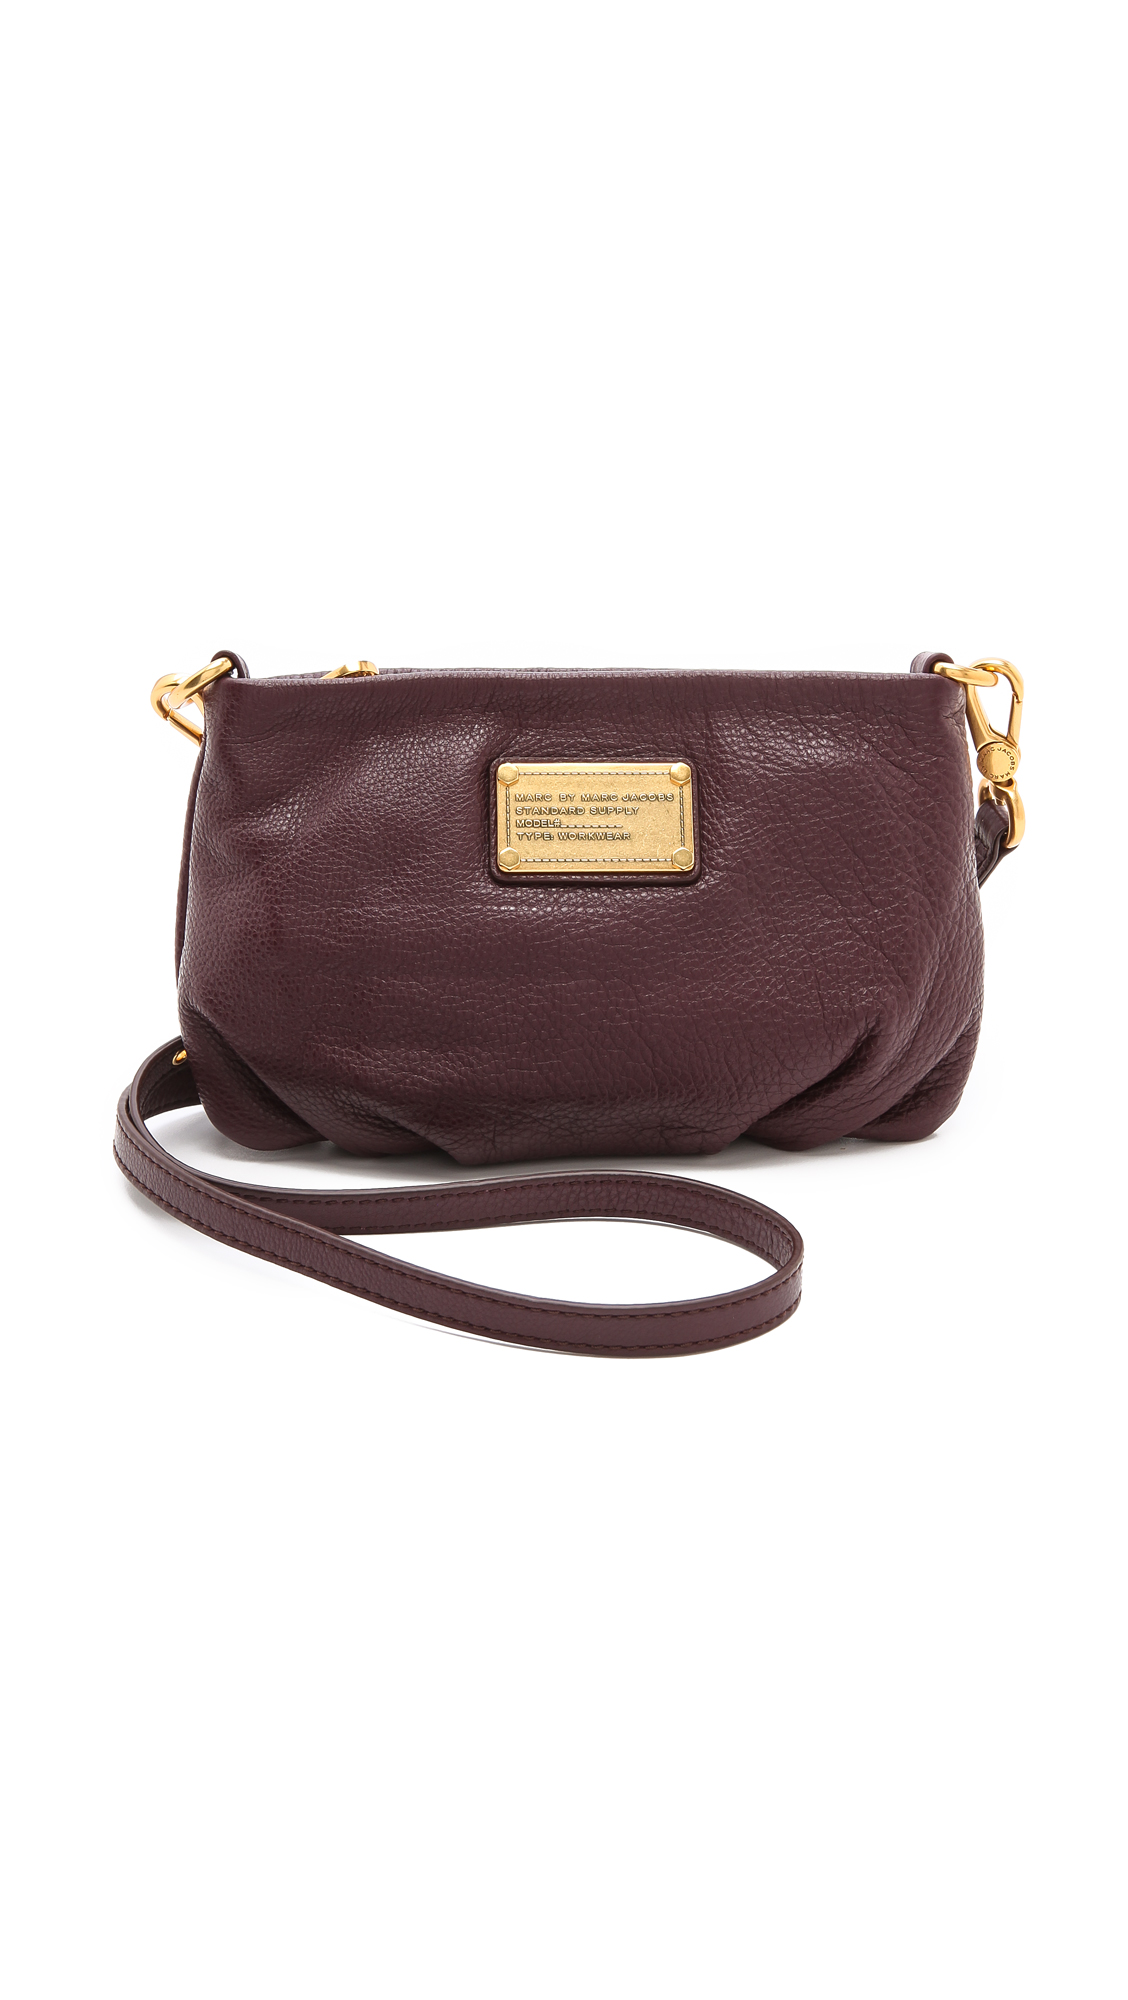 marc by marc jacobs classic q percy cross body bag in brown cardamom brown lyst. Black Bedroom Furniture Sets. Home Design Ideas